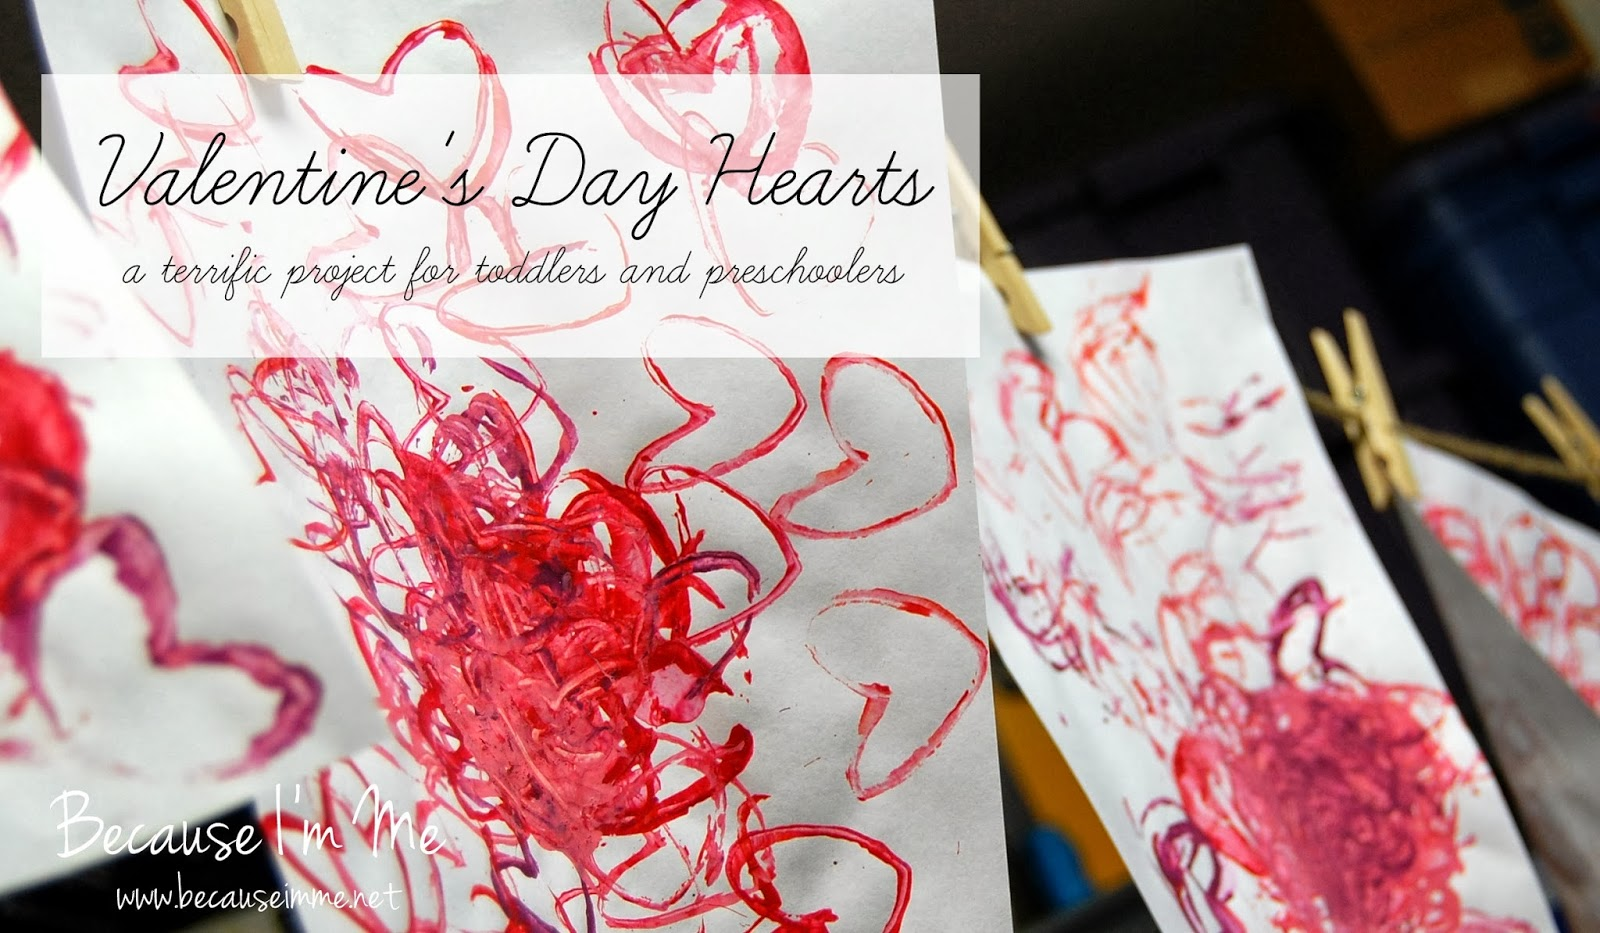 Because I'm Me easy and fun Valentine's Day craft for preschoolers and toddlers